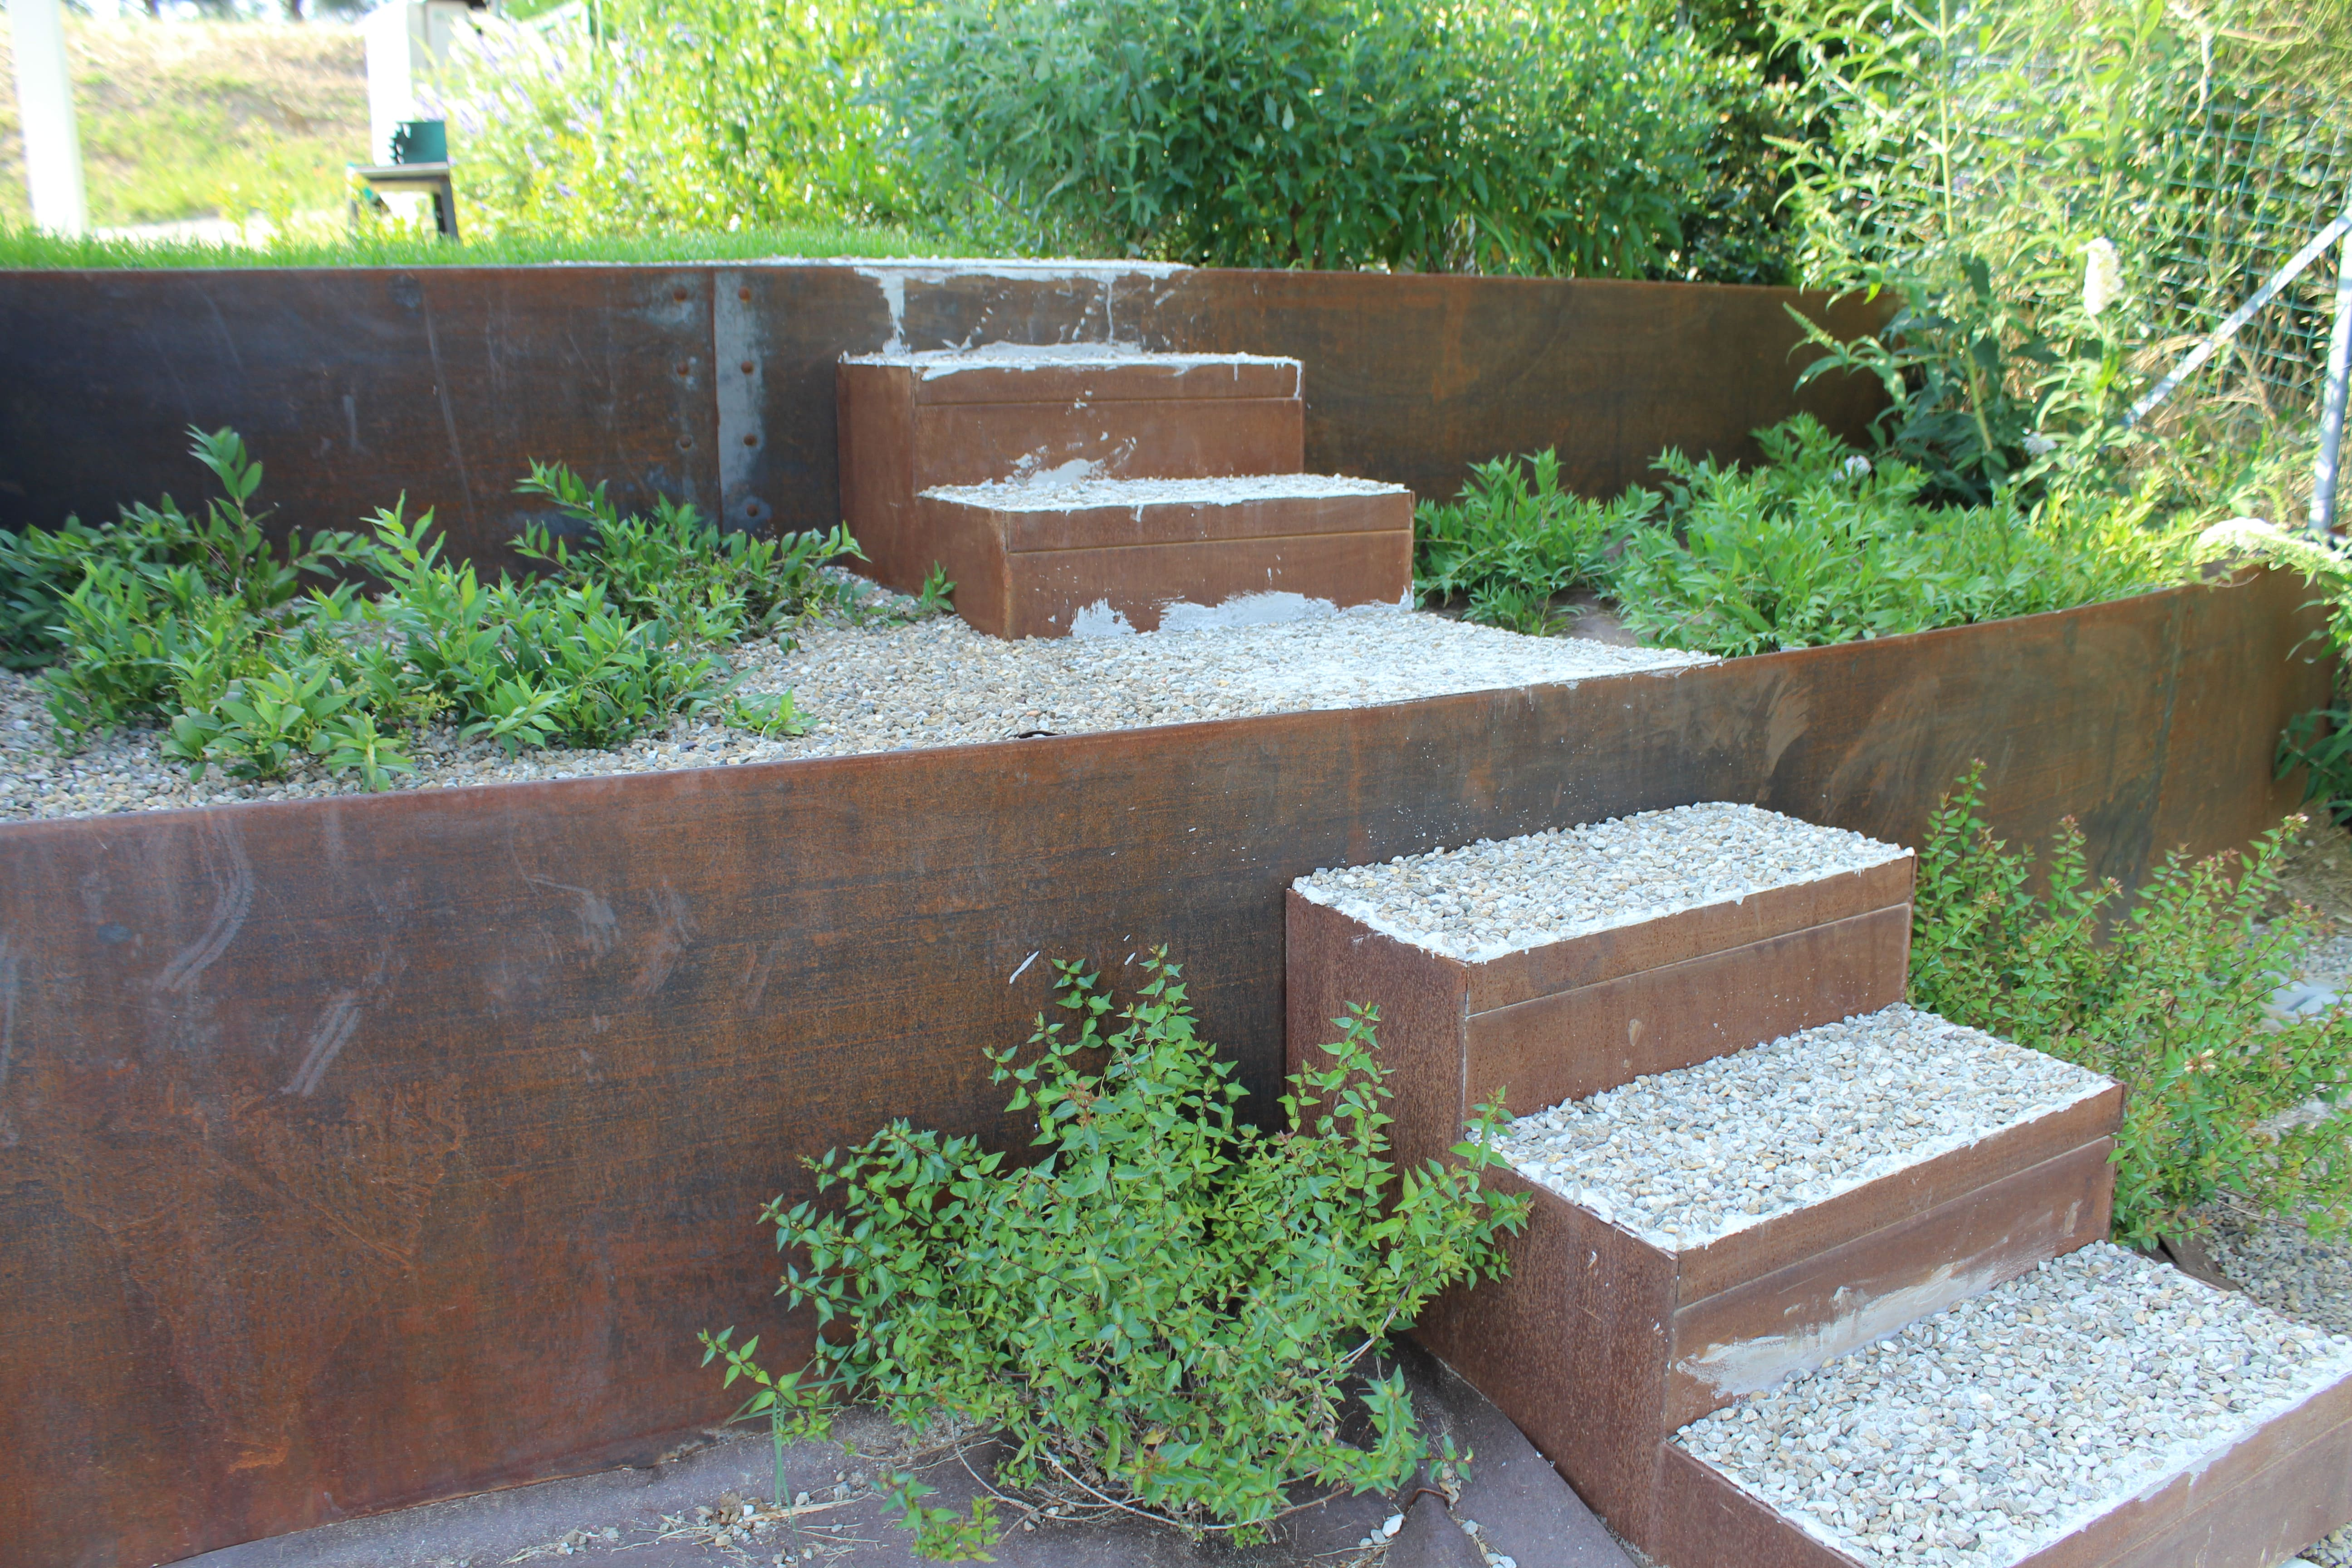 Ironwall PLS – Steel raised flowerbeds